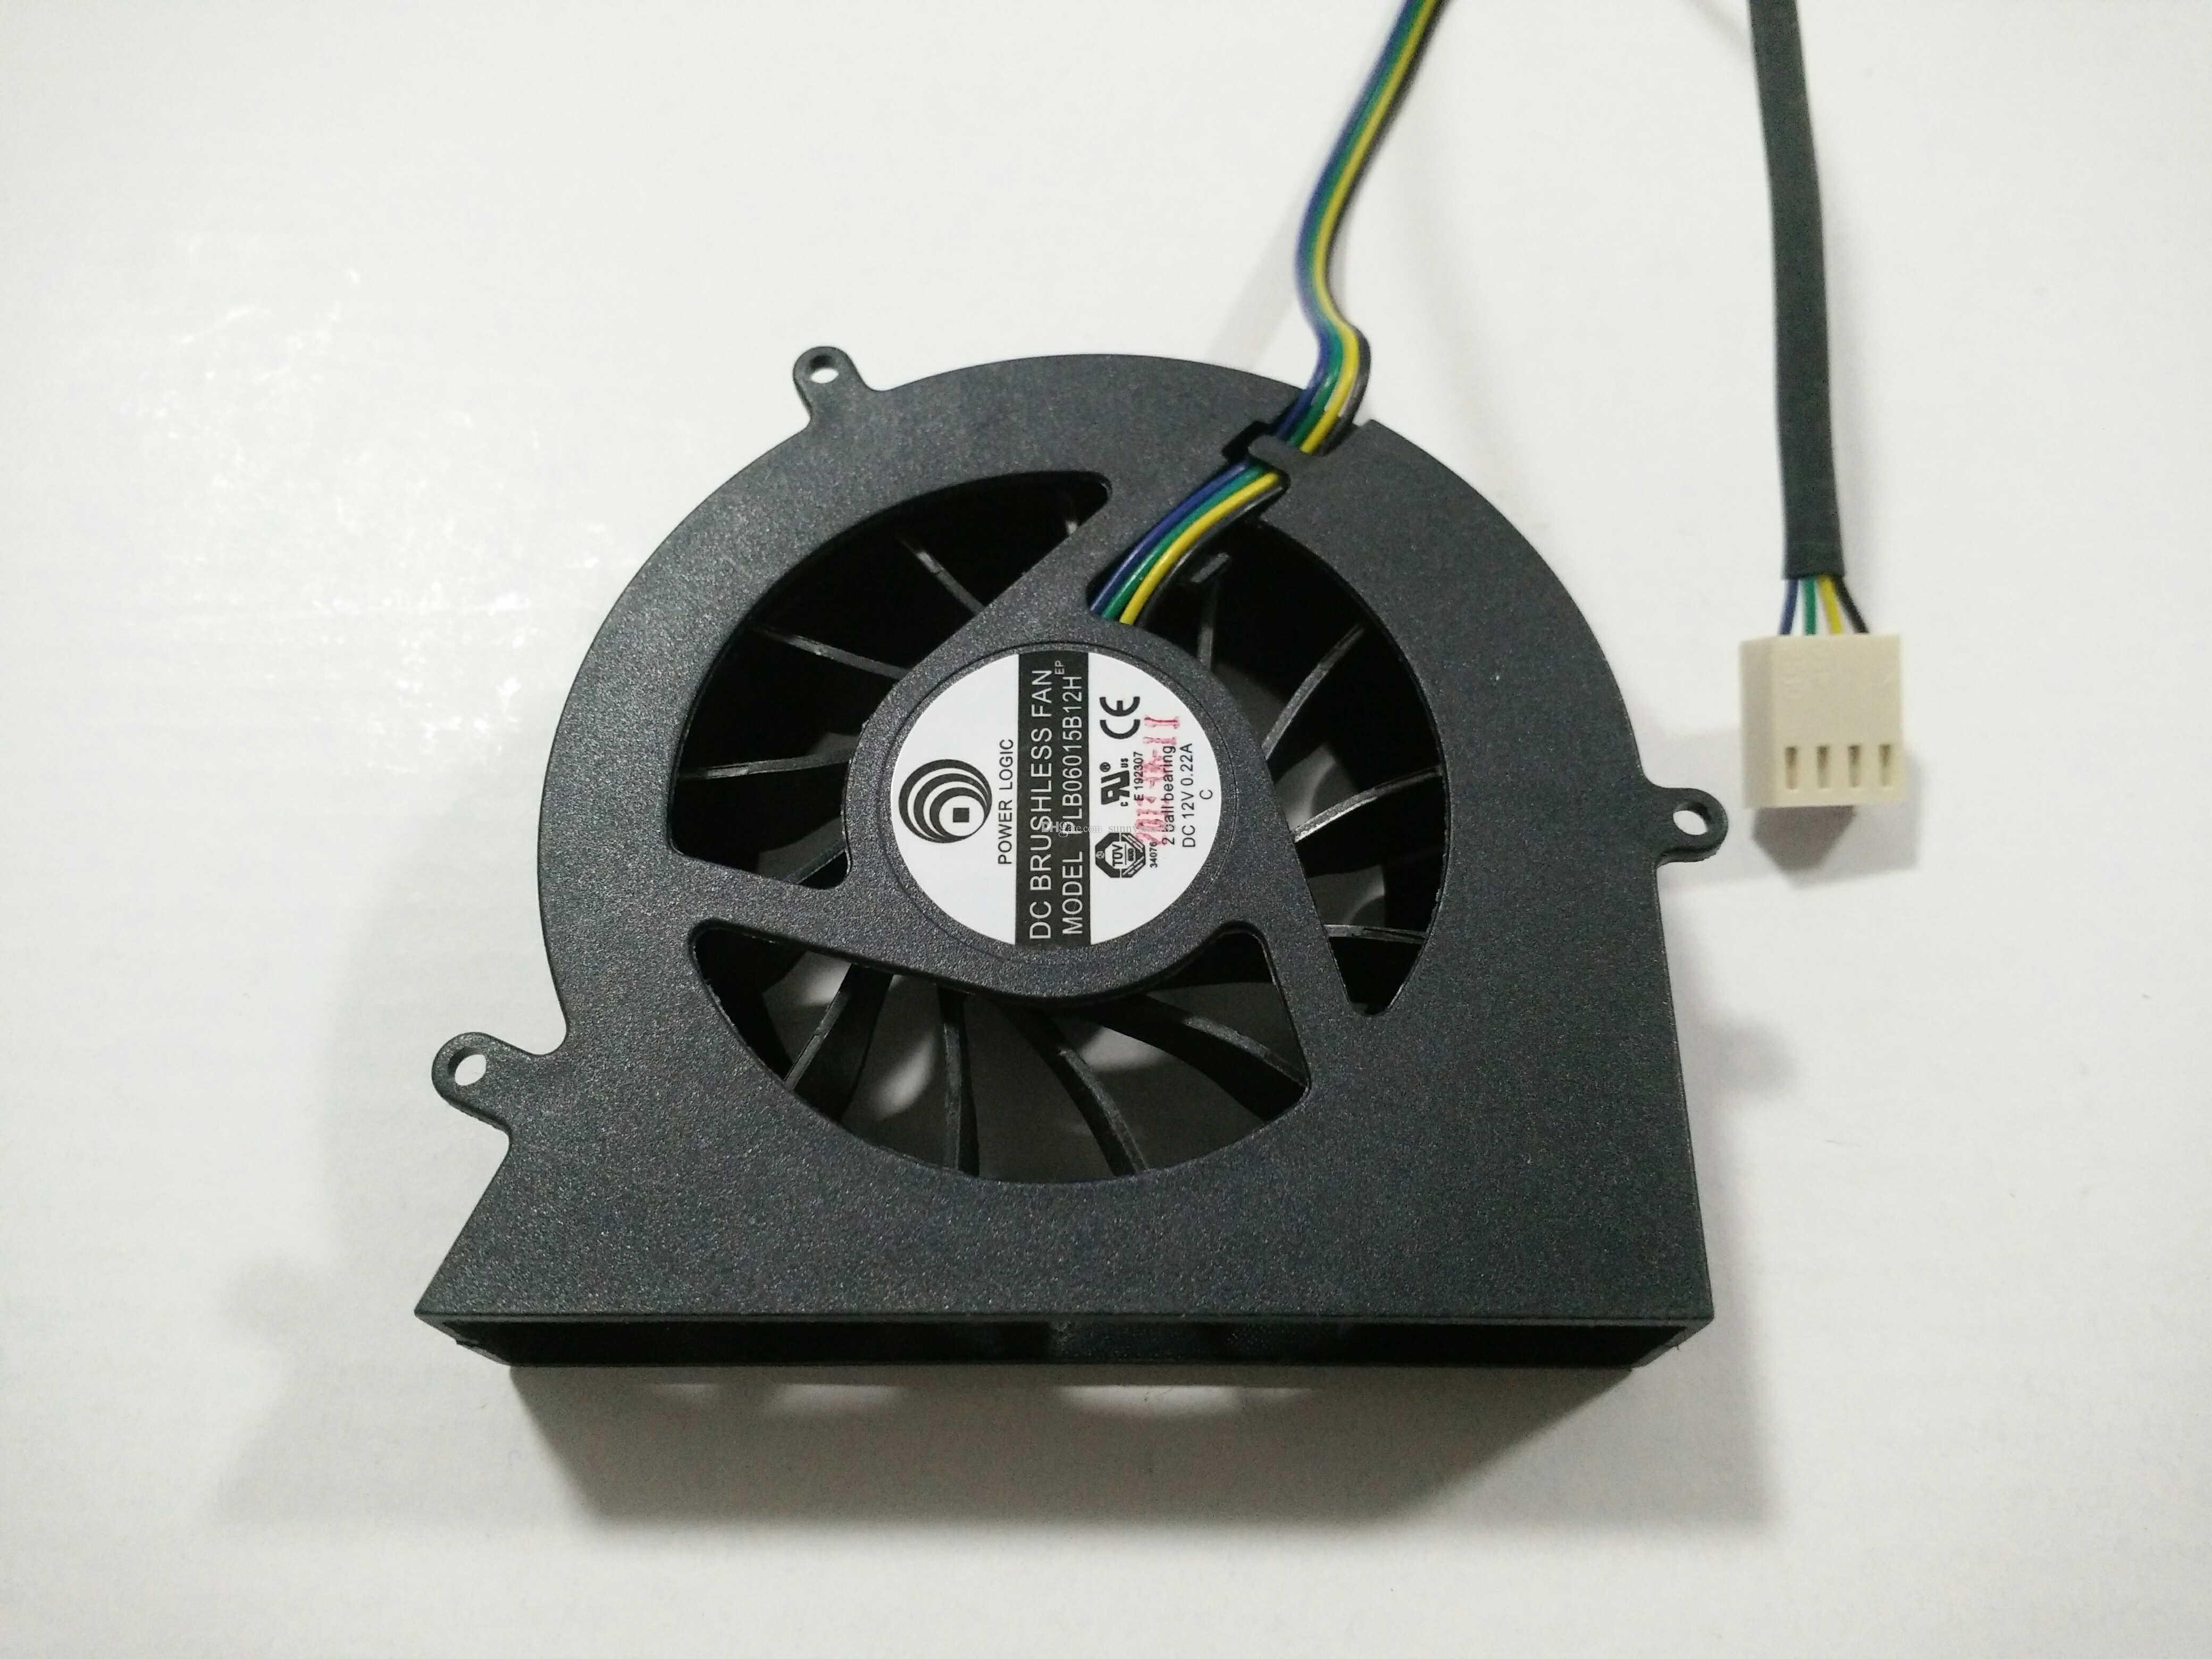 Adda Dc Brushless Fan 24vad0624ub A71gl Lf Corporation 24v Foxconn 12v Wire Diagram Great 4 Computer Images Electrical And Wiring